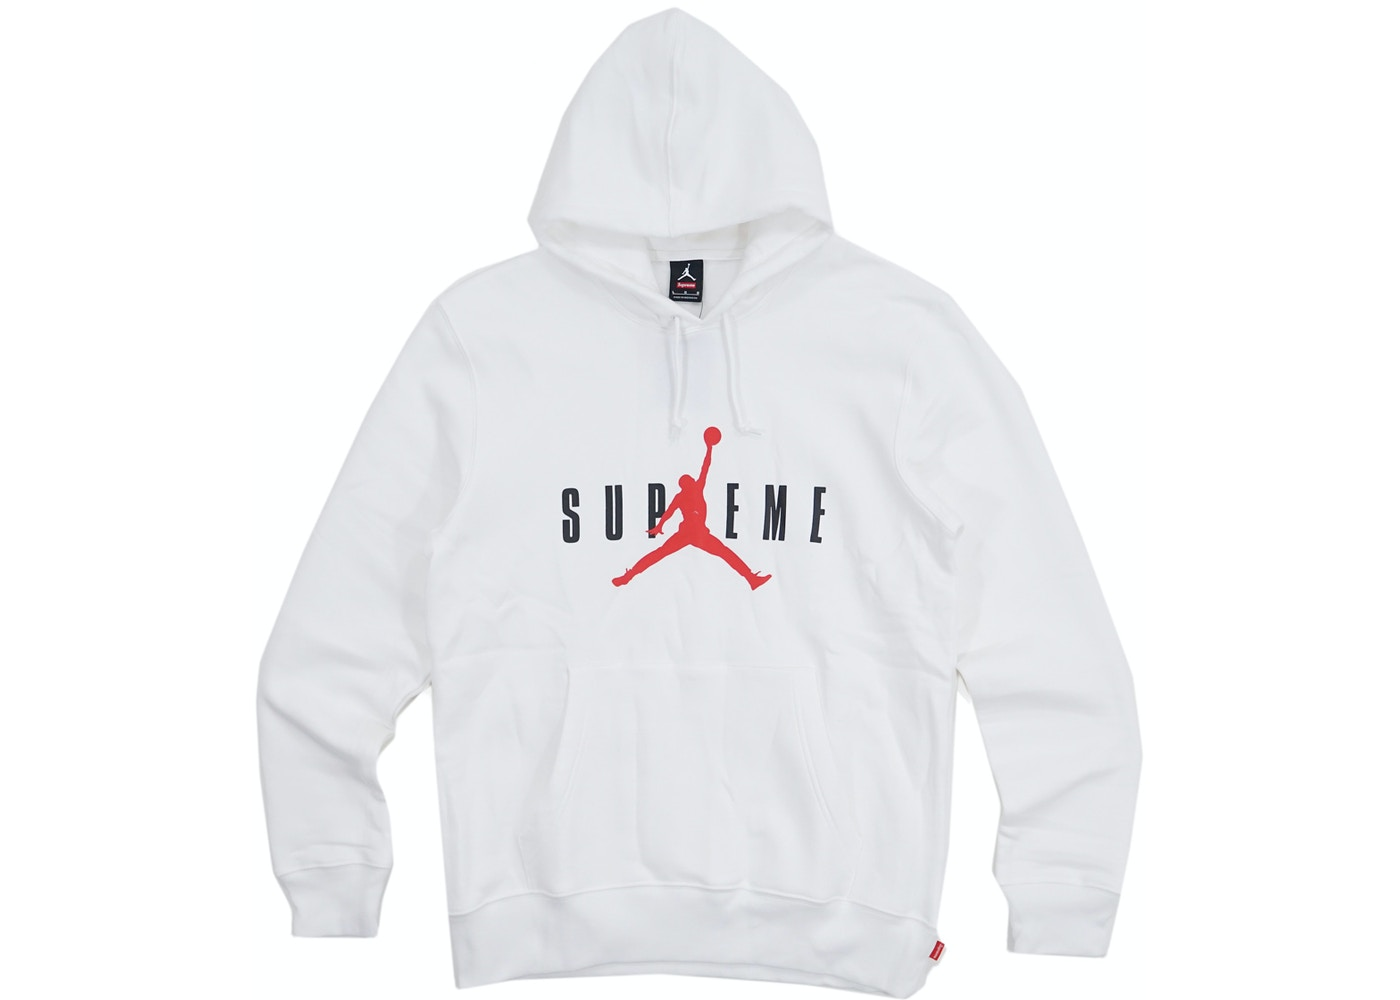 newest a5b1e 32472 Supreme Jordan Hooded Pullover White - FW15